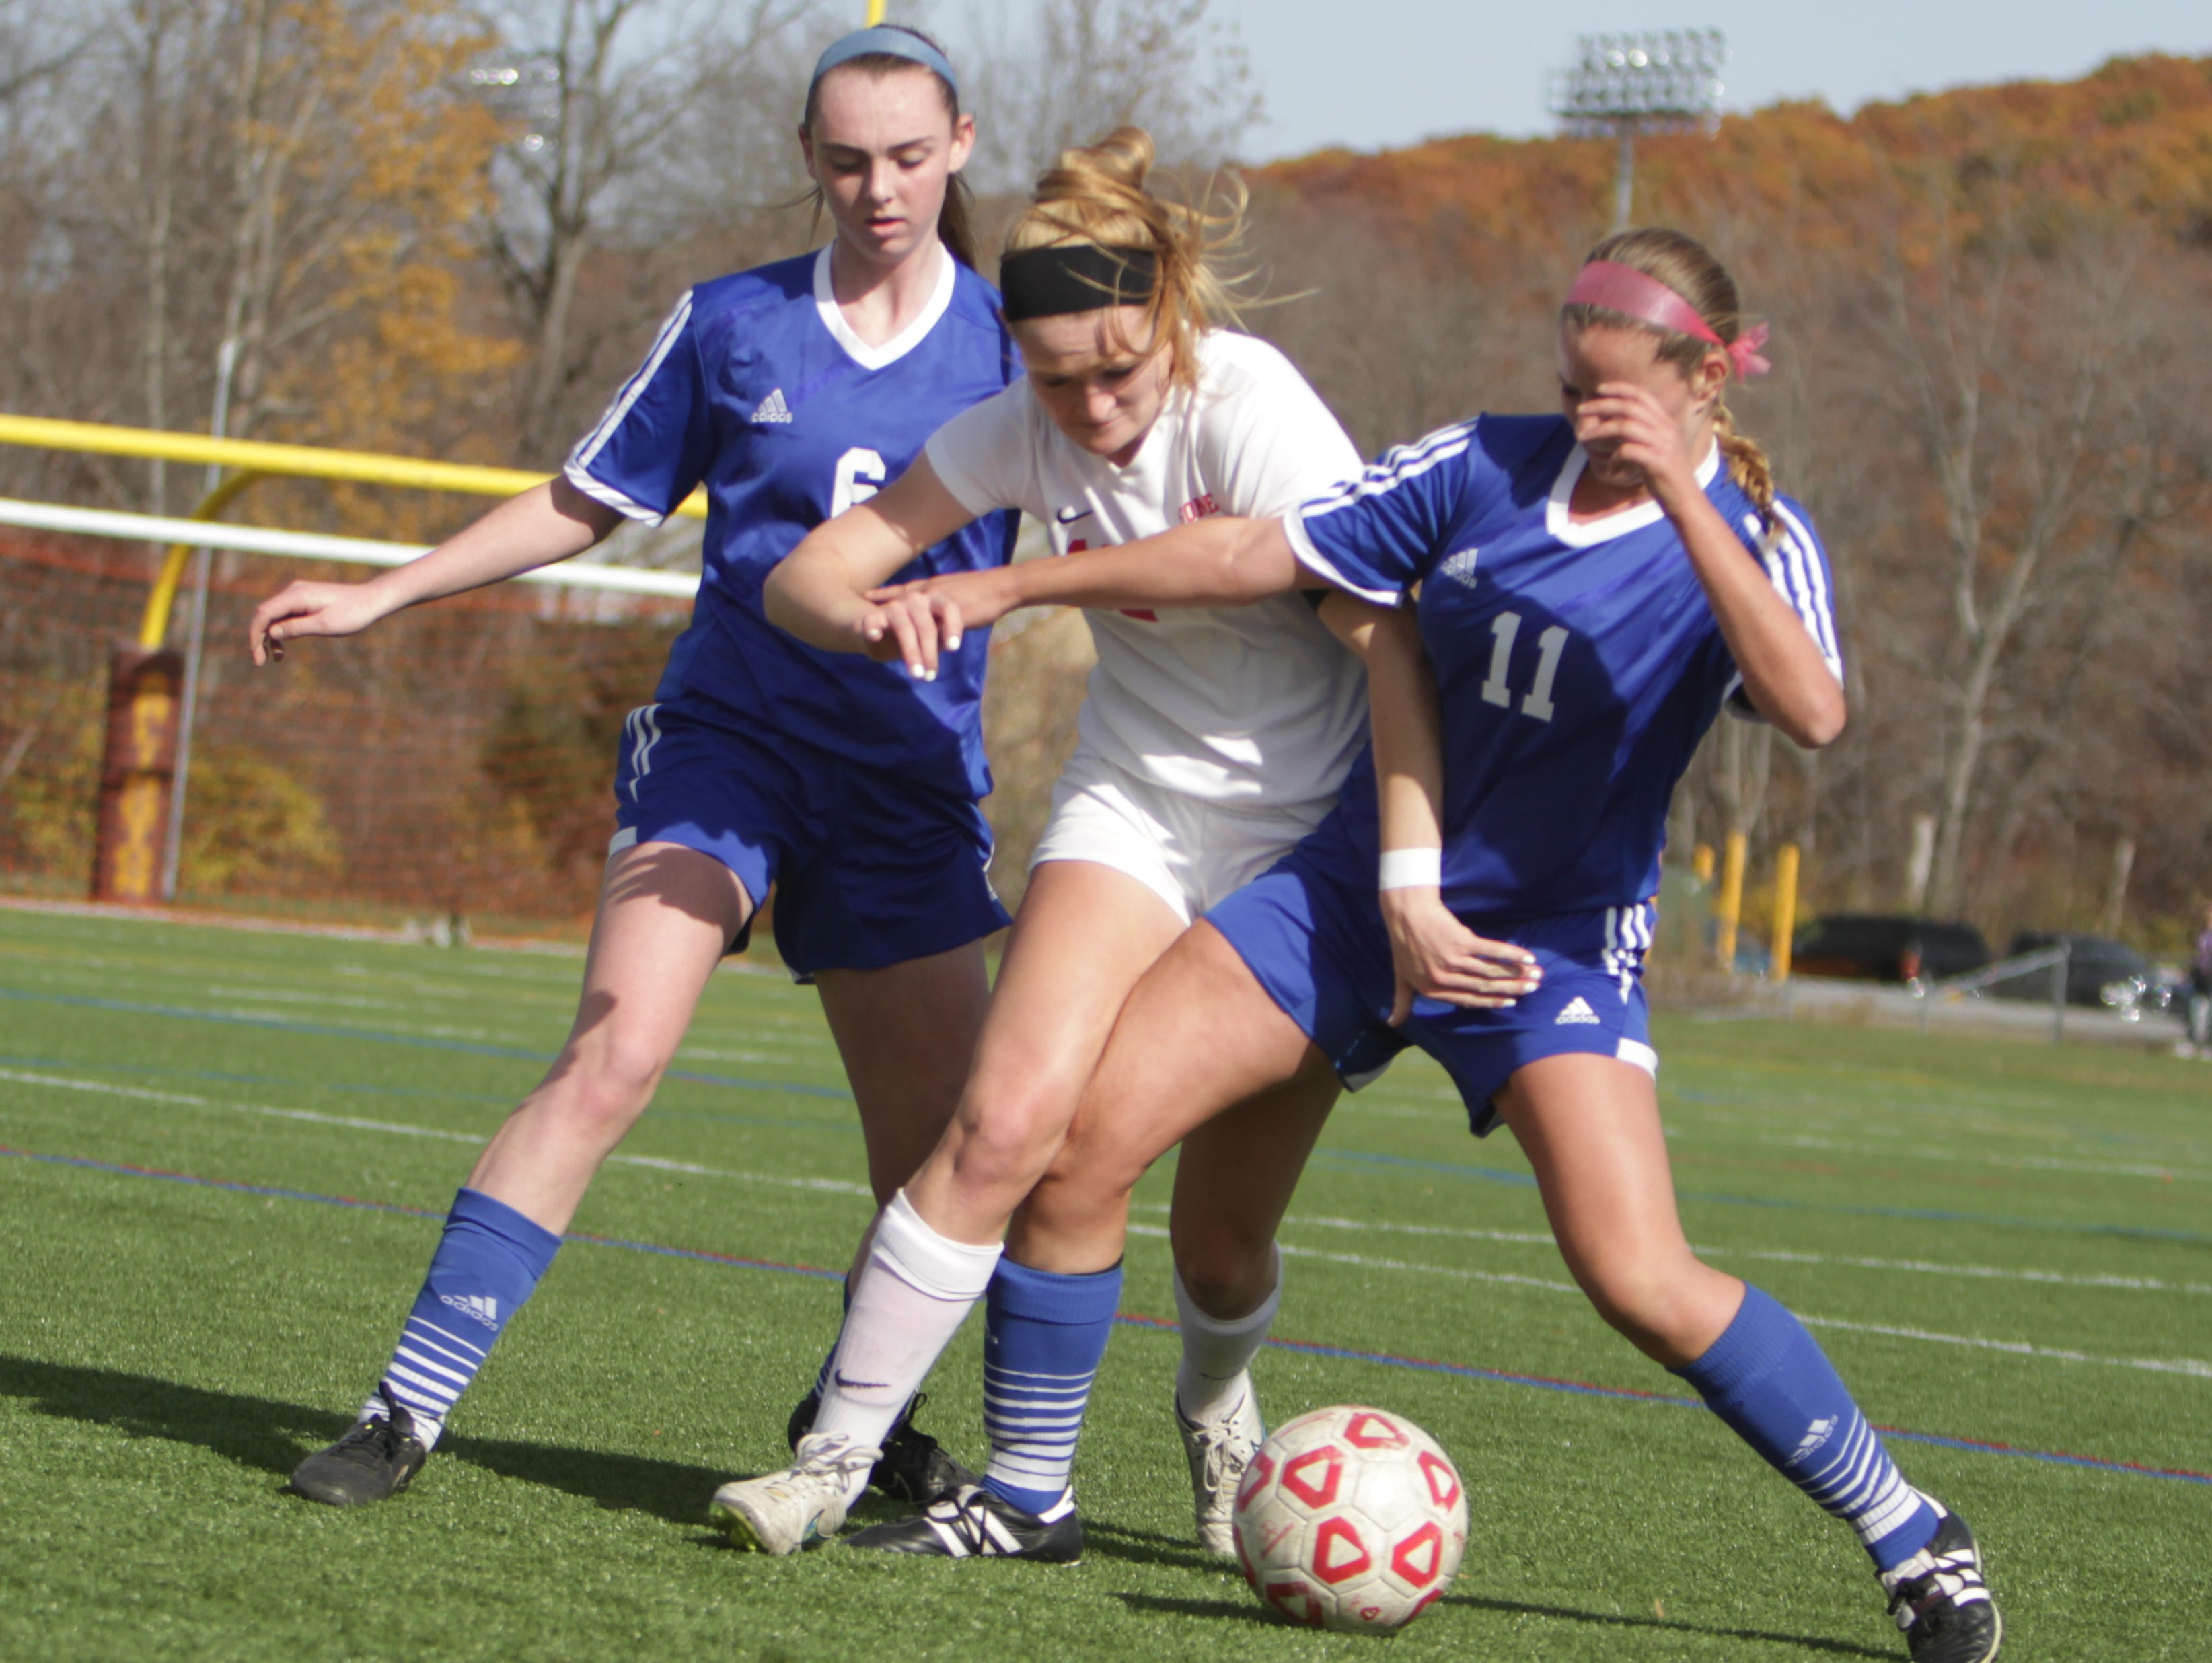 Girls soccer all-stars: Eberts humbly dominates in her senior season  USA To...